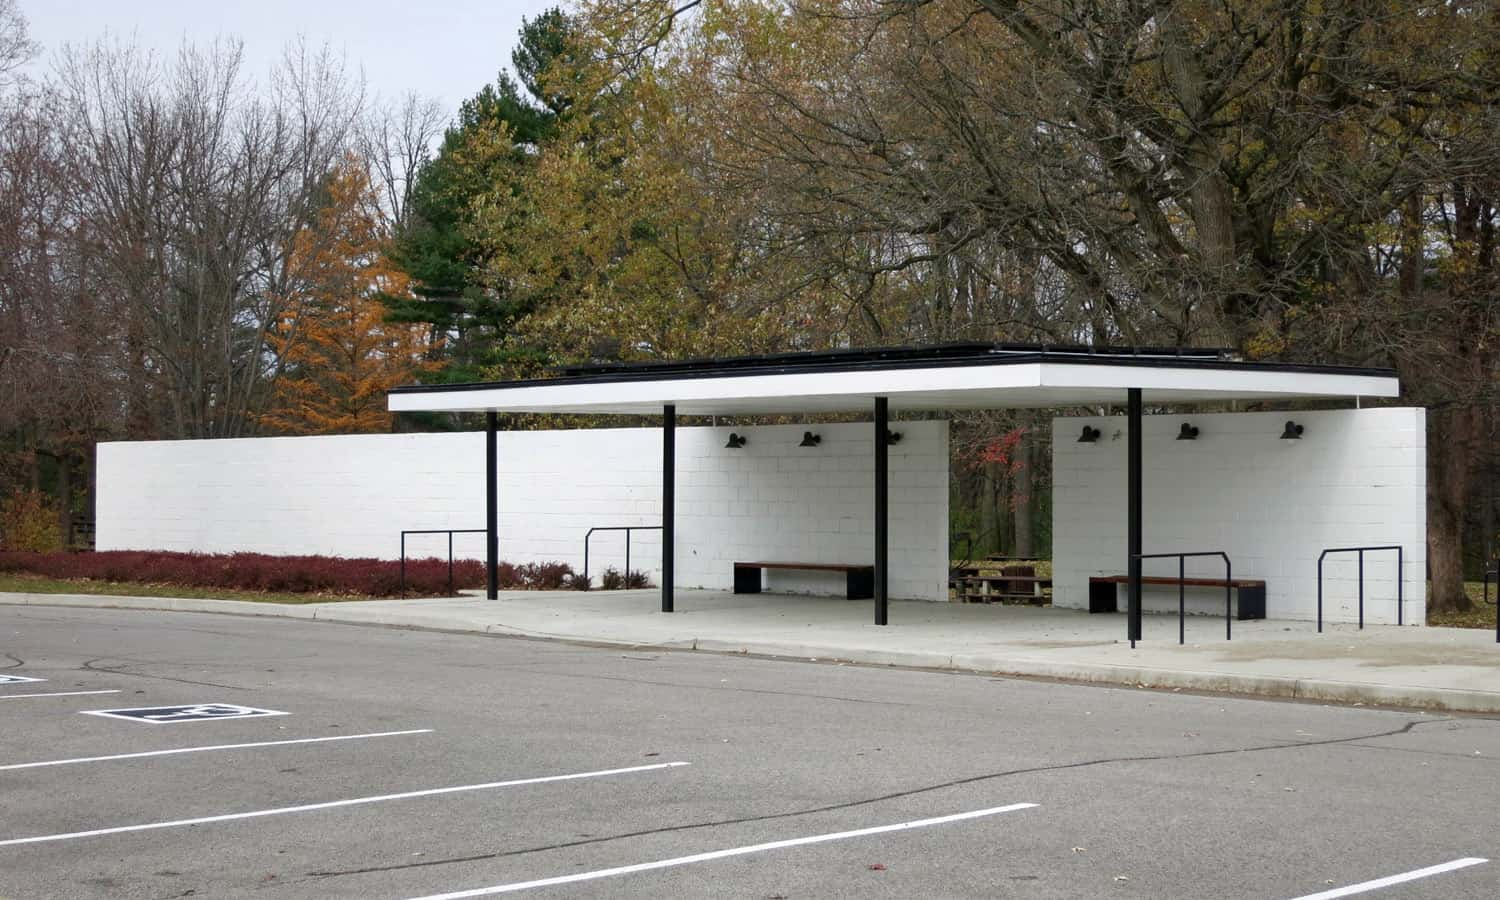 Bus stop pavilion located to the north of the main parking lot